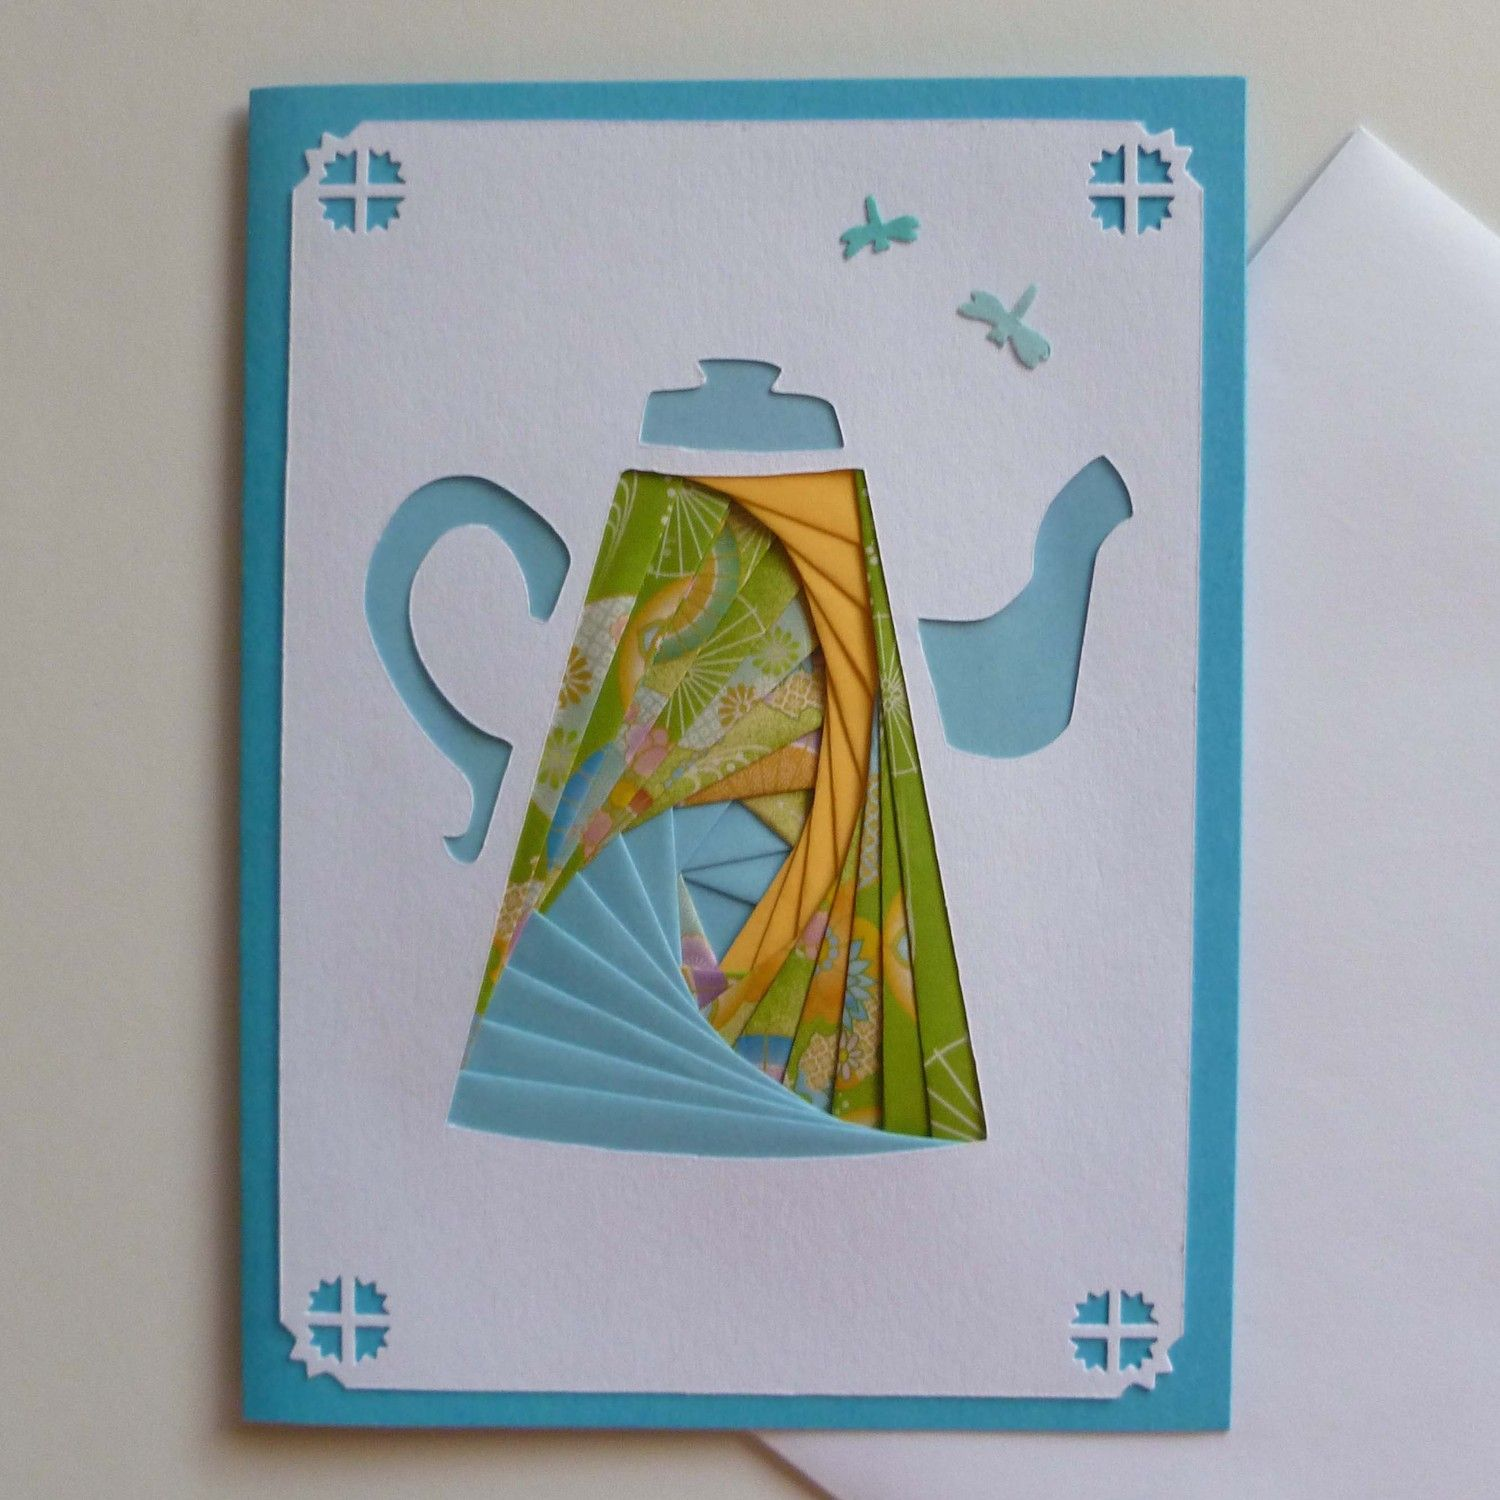 Folding Card Making Ideas Part - 25: Iris Paper Folding - With Some Modification This Could Be Cute.. Also - @